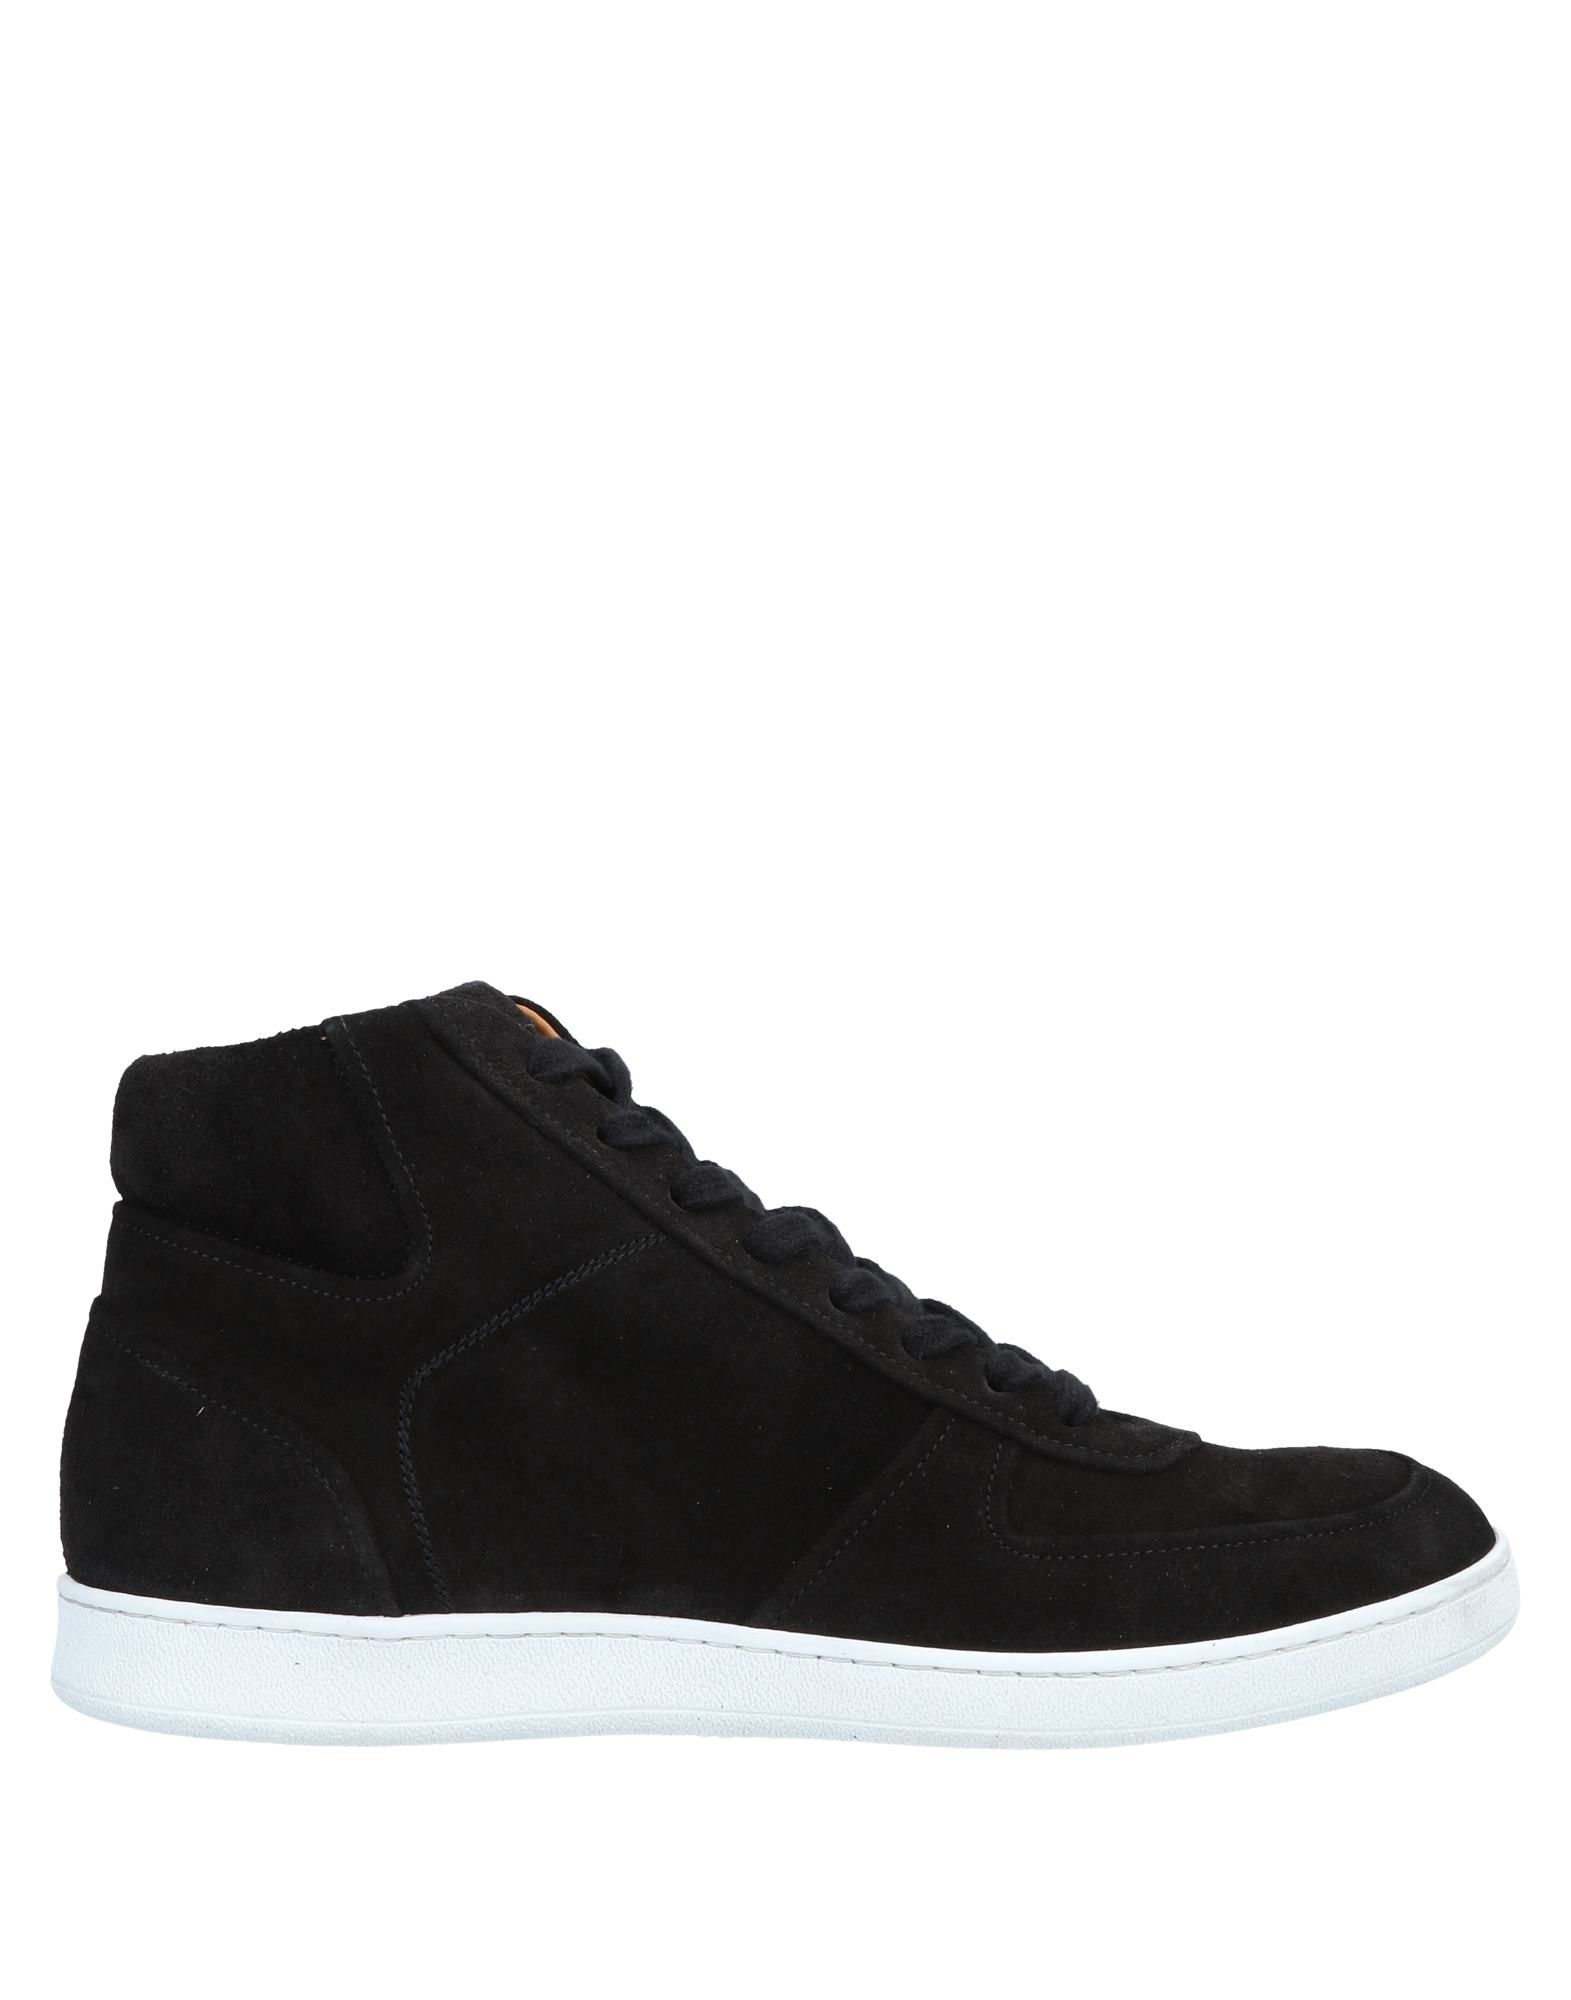 Baskets Pantofola D'or Homme - baskets Pantofola D'or   - 11569730QX